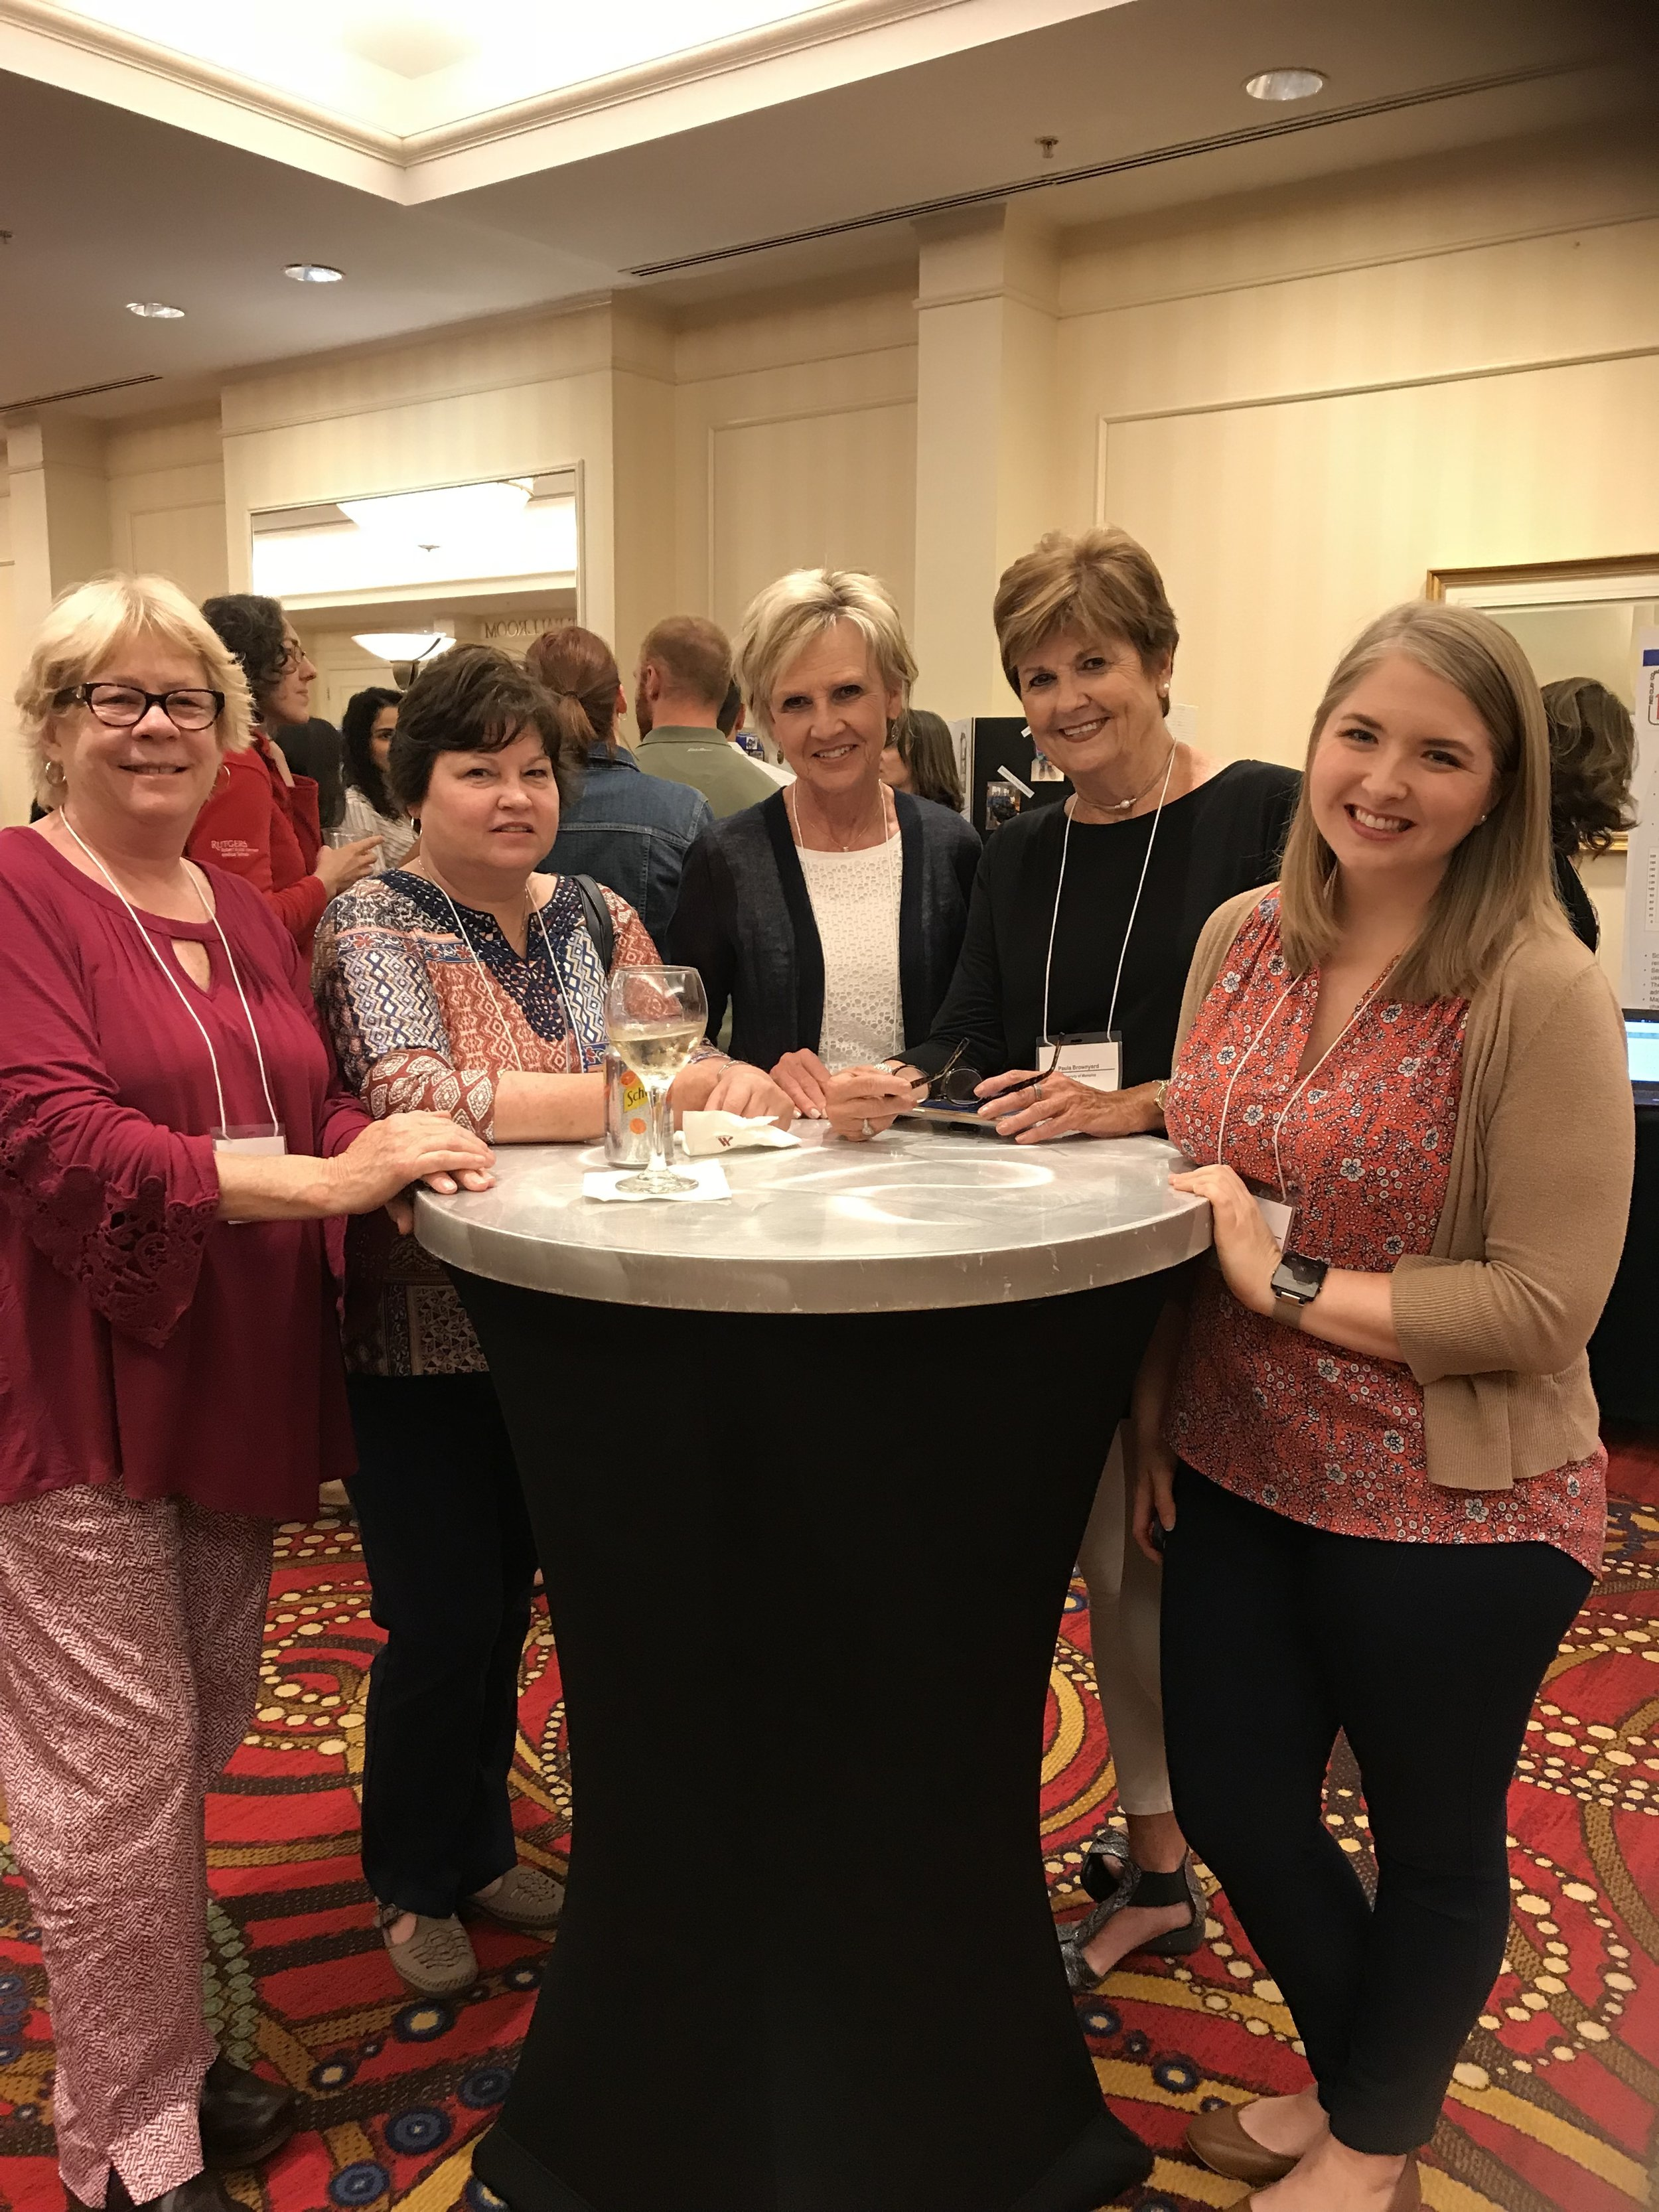 RTI2-B Team Members: Patty Outten, Cara Richardson, Sandra Harper, Paula Brownyard, and Shelby Cook